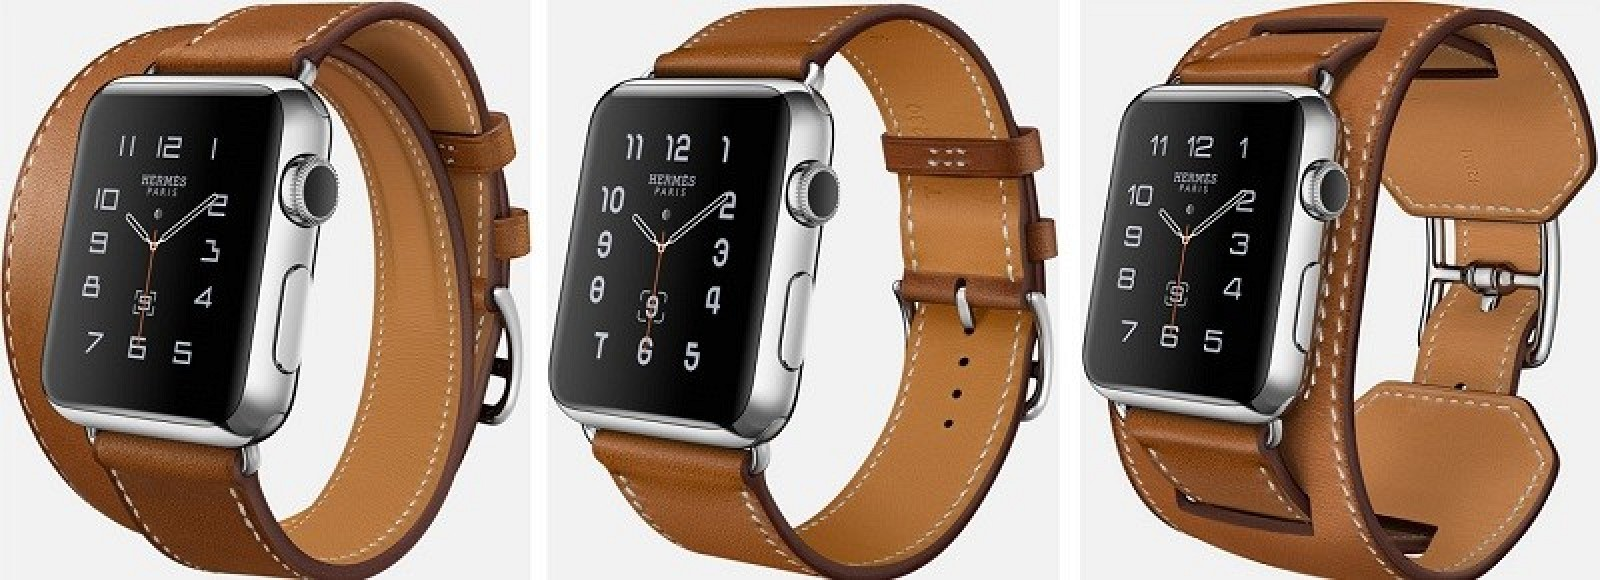 Apple to Partner With Hermes For New Apple Watch Bands and ...